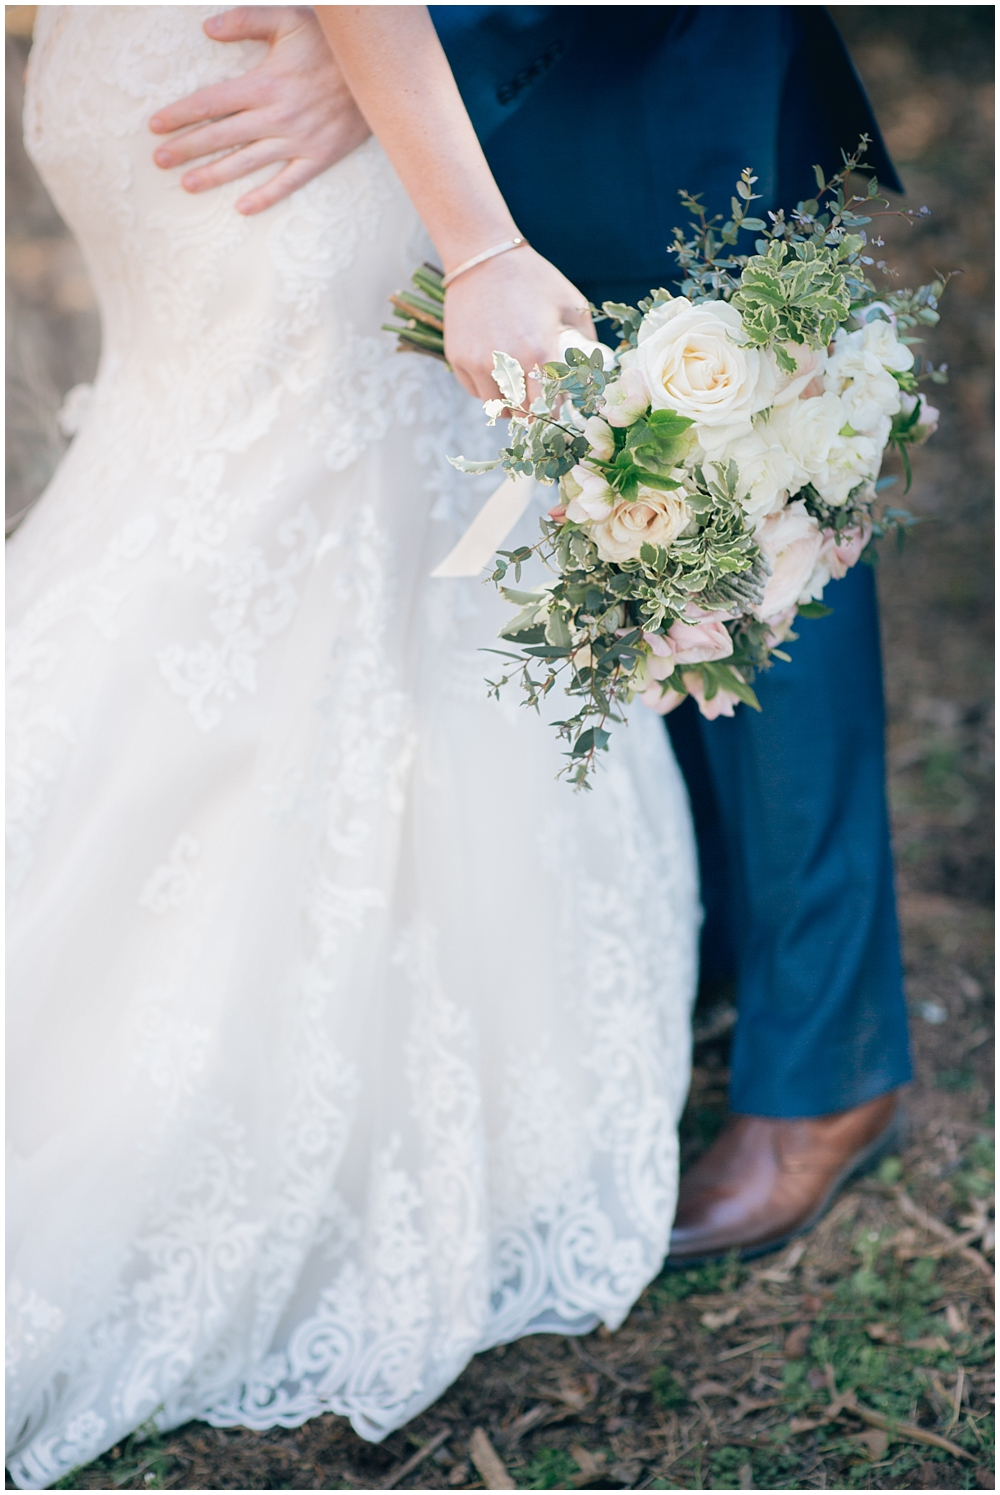 PattengalePhotography_StLouis_Wedding_Photographer_Boho_Hipster_Urban_Style_StCharles_Missouri_BullRunWinery_Charlottesville_Ashley&Sawyer_0044.jpg